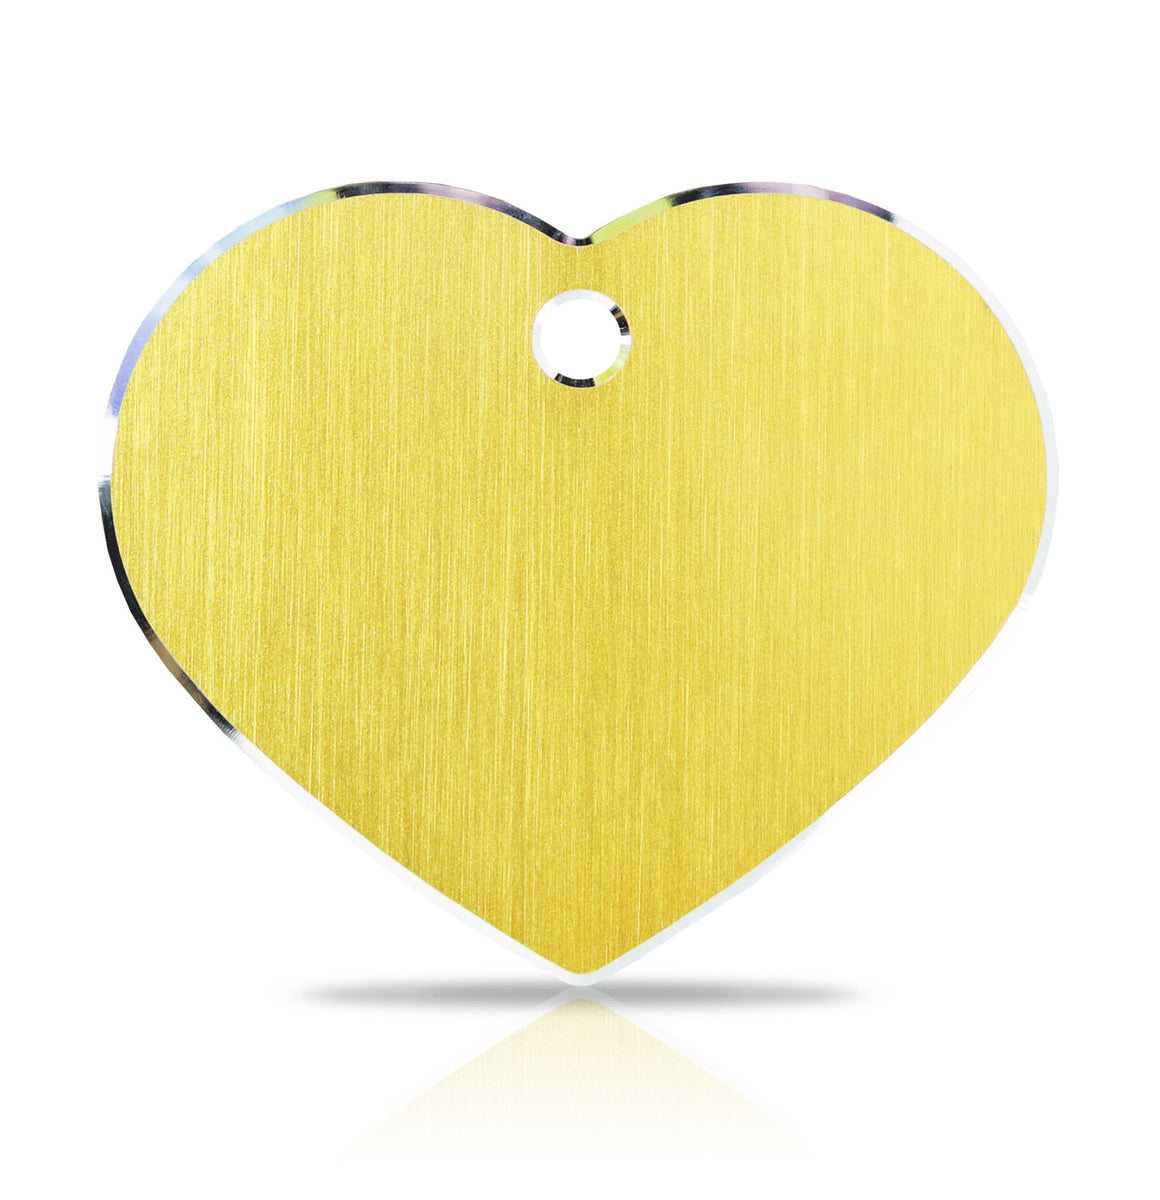 TaggIT Hi-Line Large Heart iMarc Pet Engraving Tag